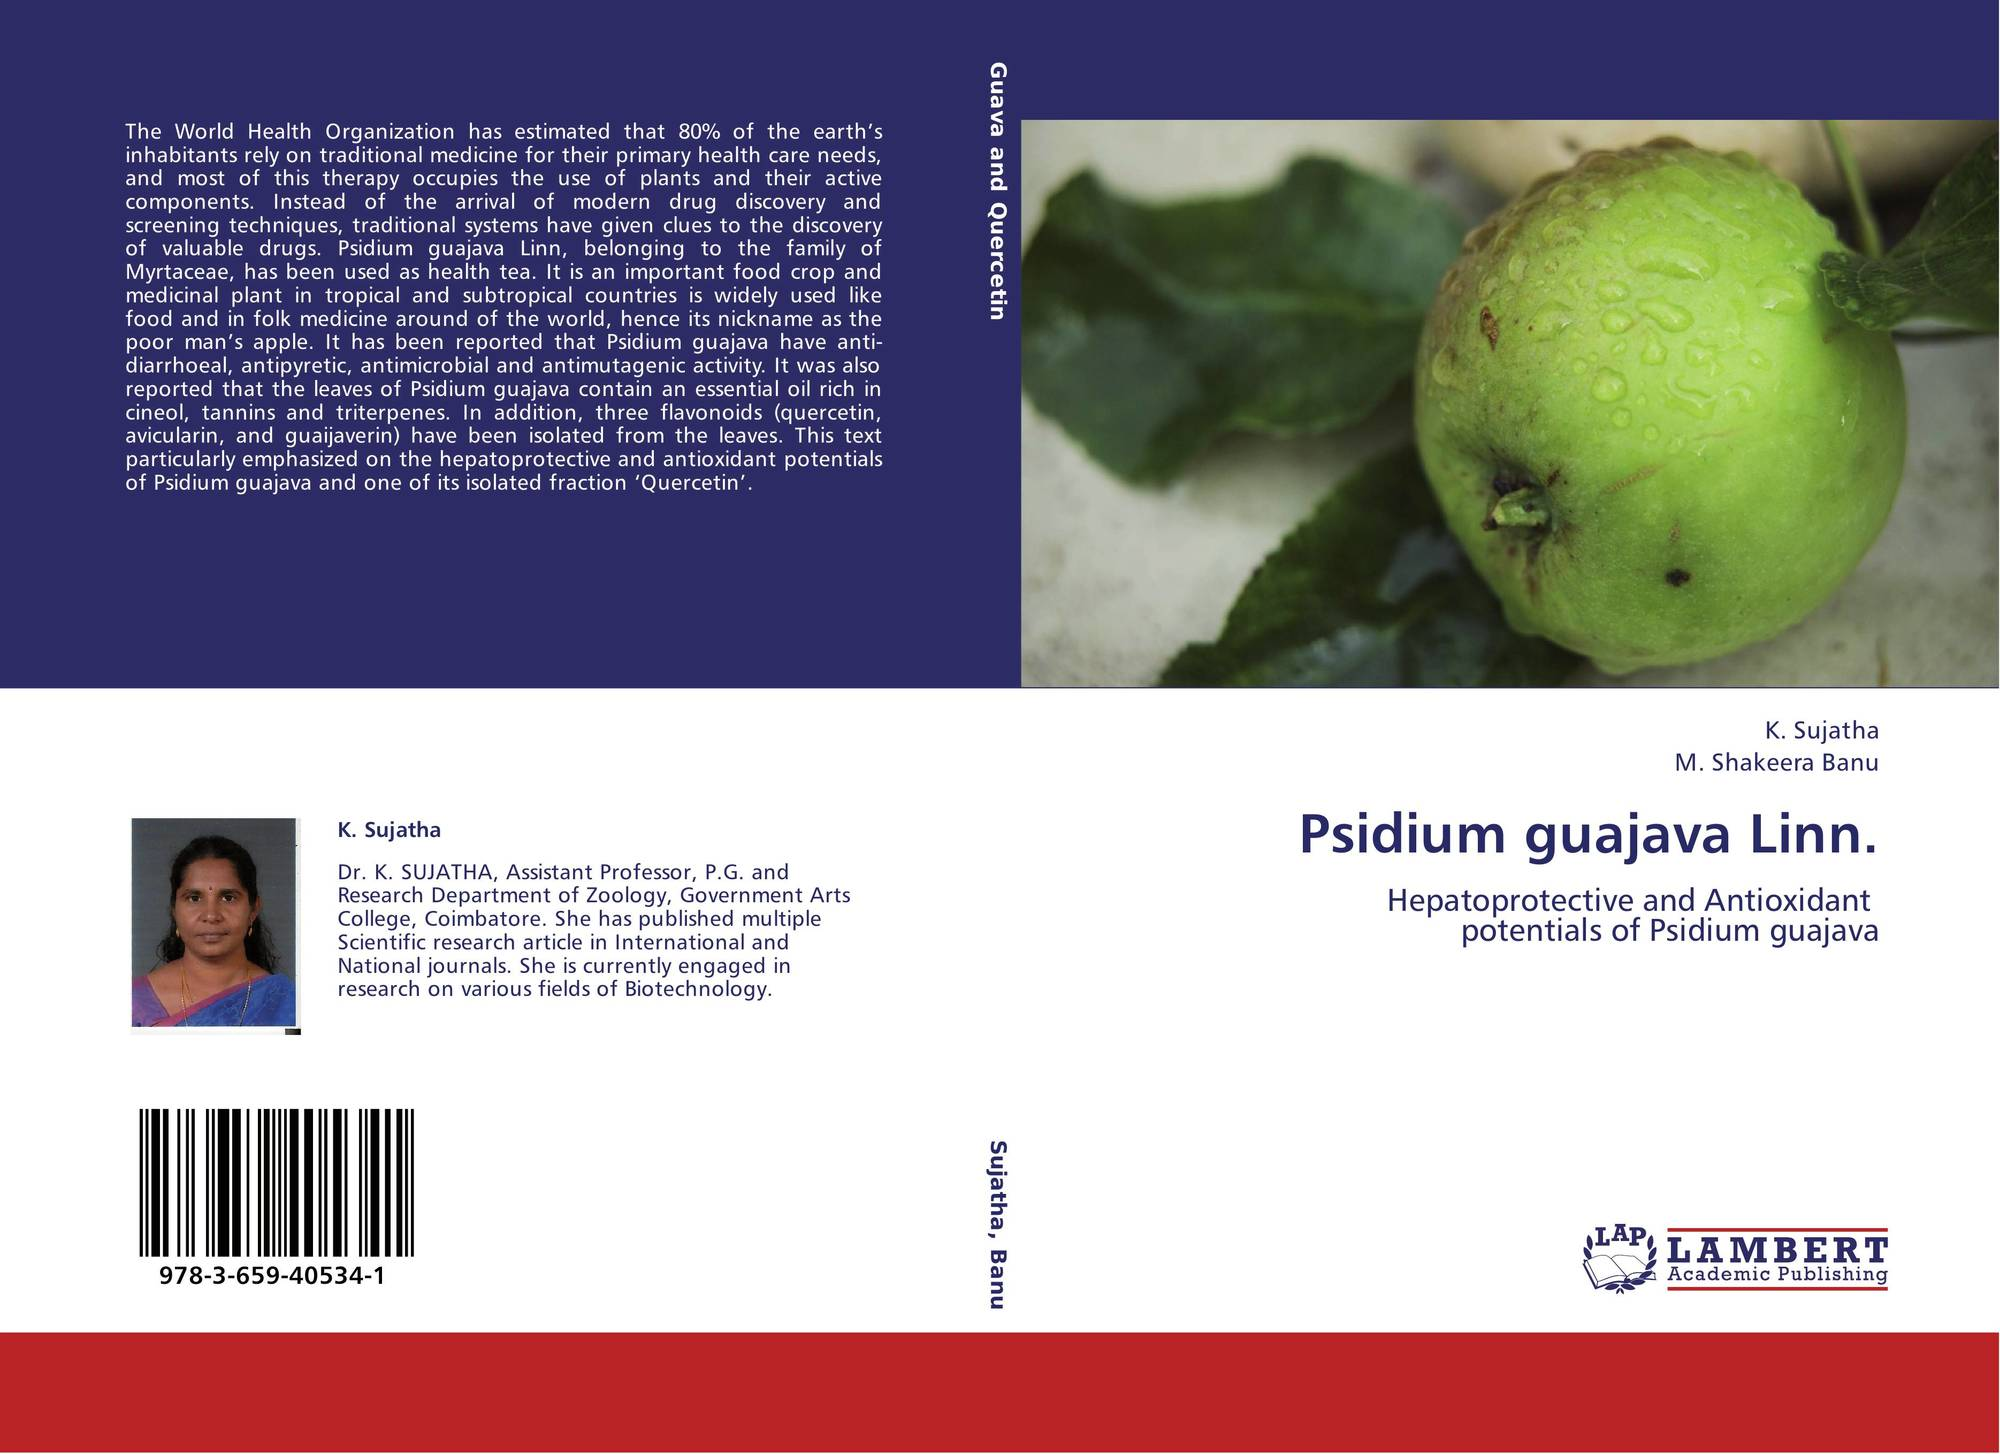 microbial property of psidium guavaja and Scientific investigations of the medicinal properties of guava leaf products date back to the 1940s pakistan, india, brazil, and mexico are the major commercial producers of guava fruit hawaii is the largest producer in the united states.